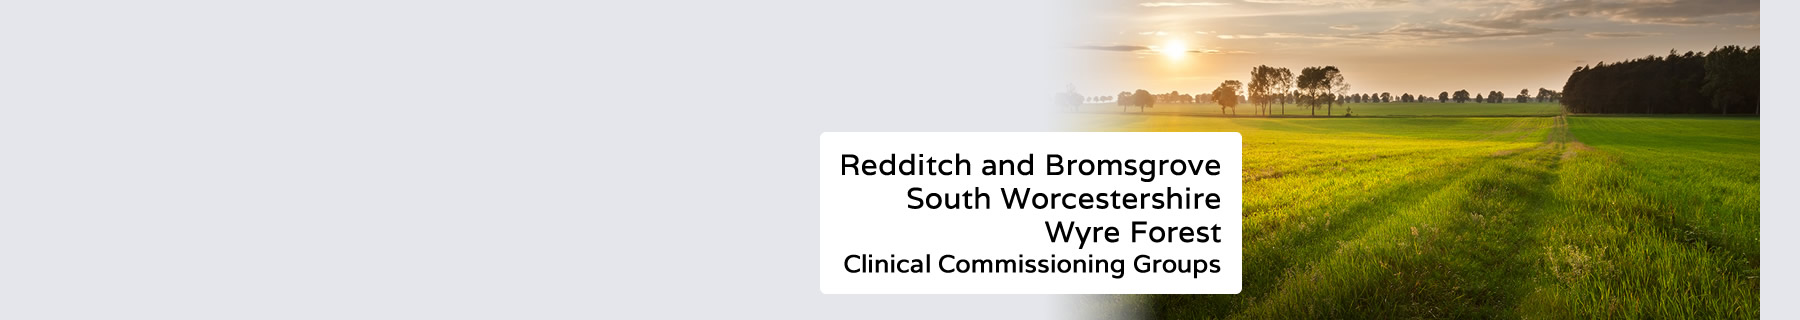 Surgery Connect replaced outdated phone systems used by Worcestershire CCGs practices, improving patient access and allowing them to manage their appointments